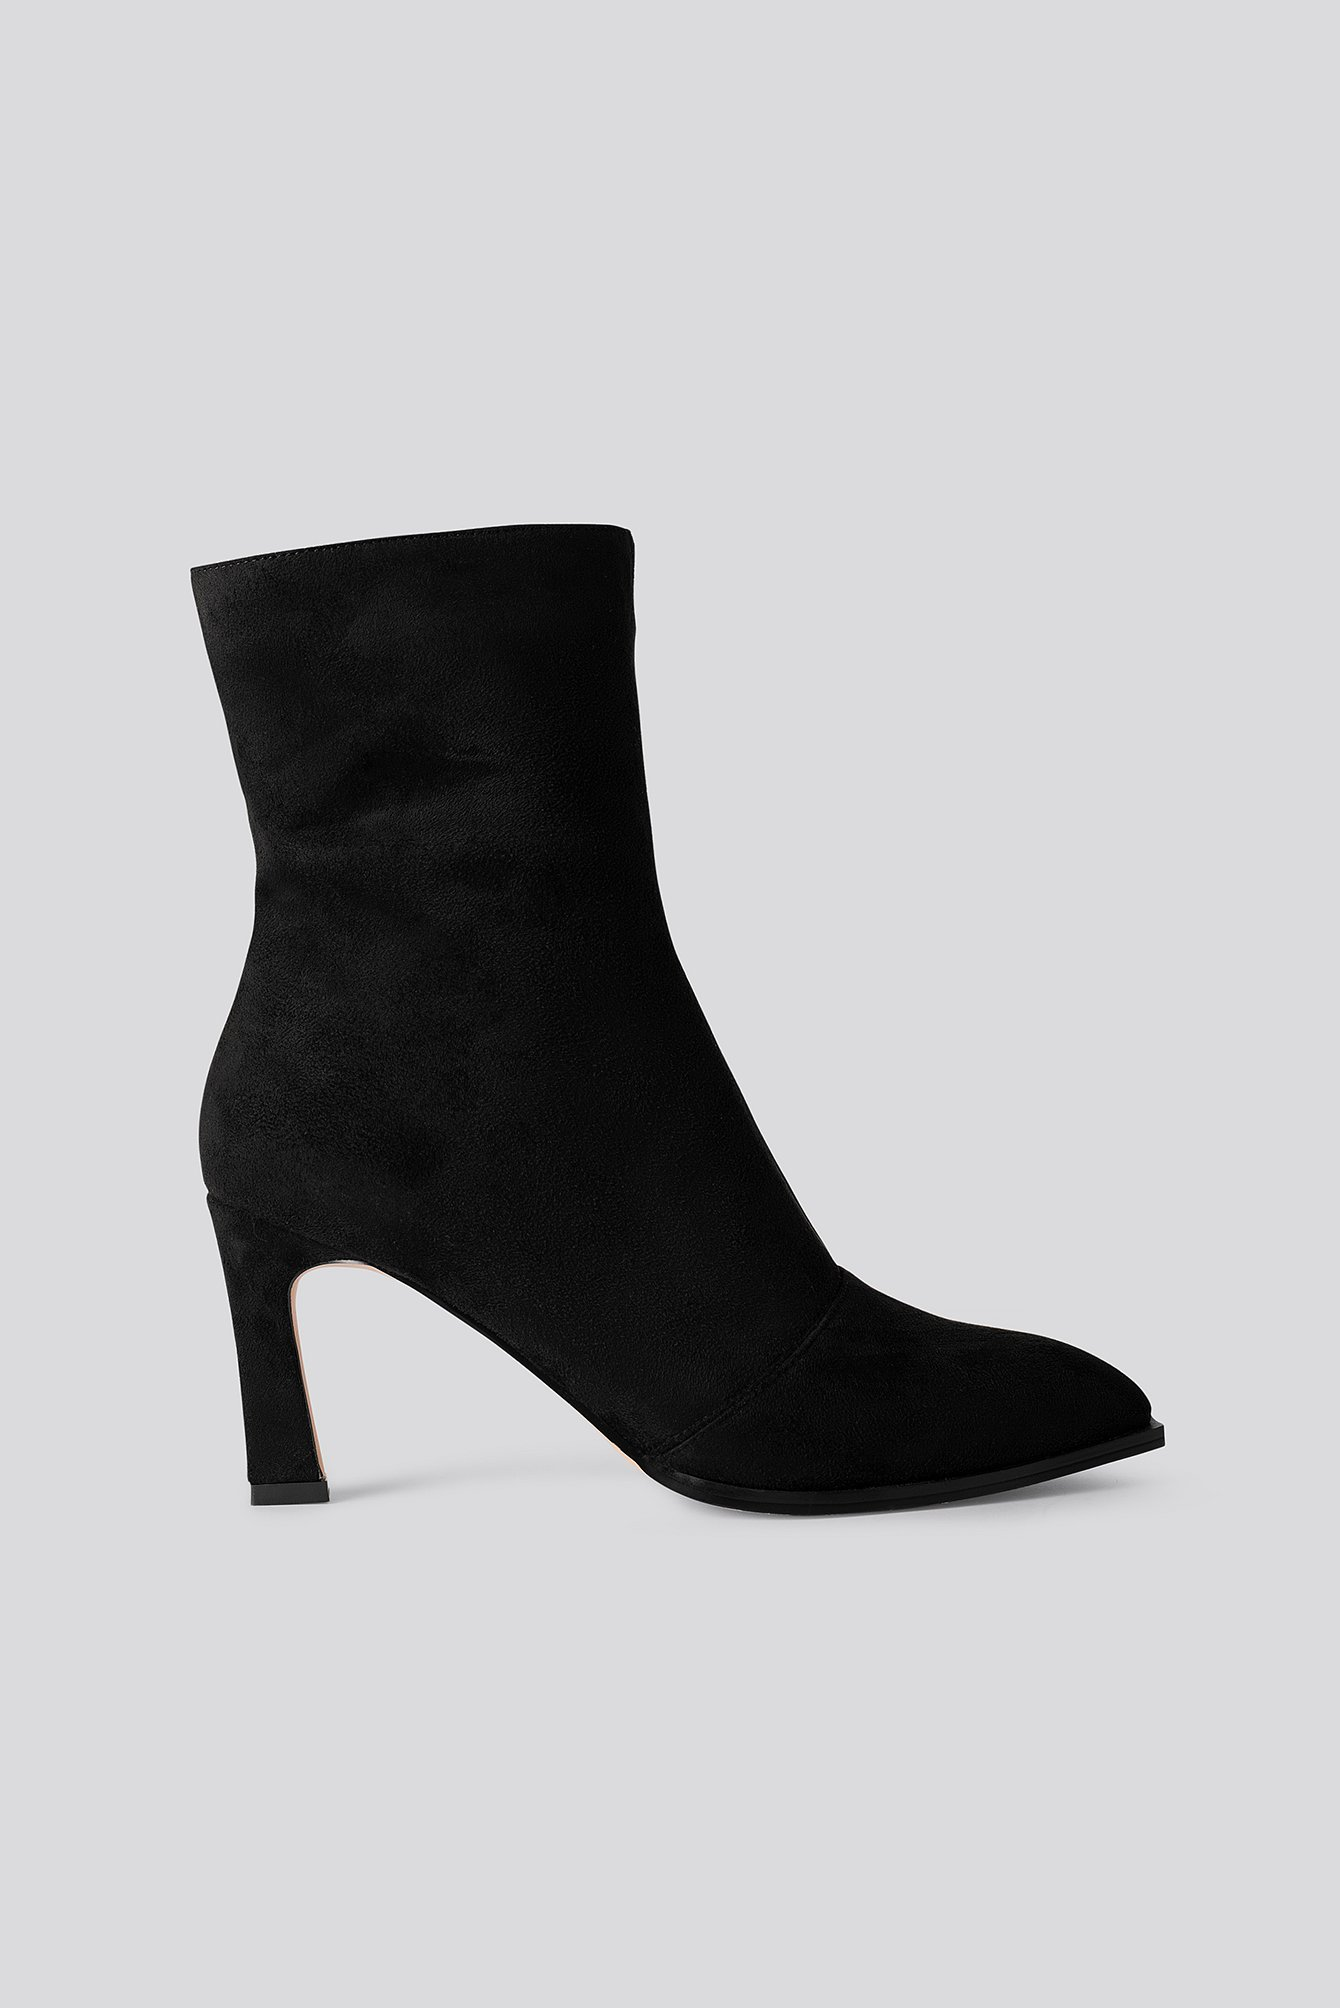 na-kd shoes -  Suede Look Heeled Boots - Black